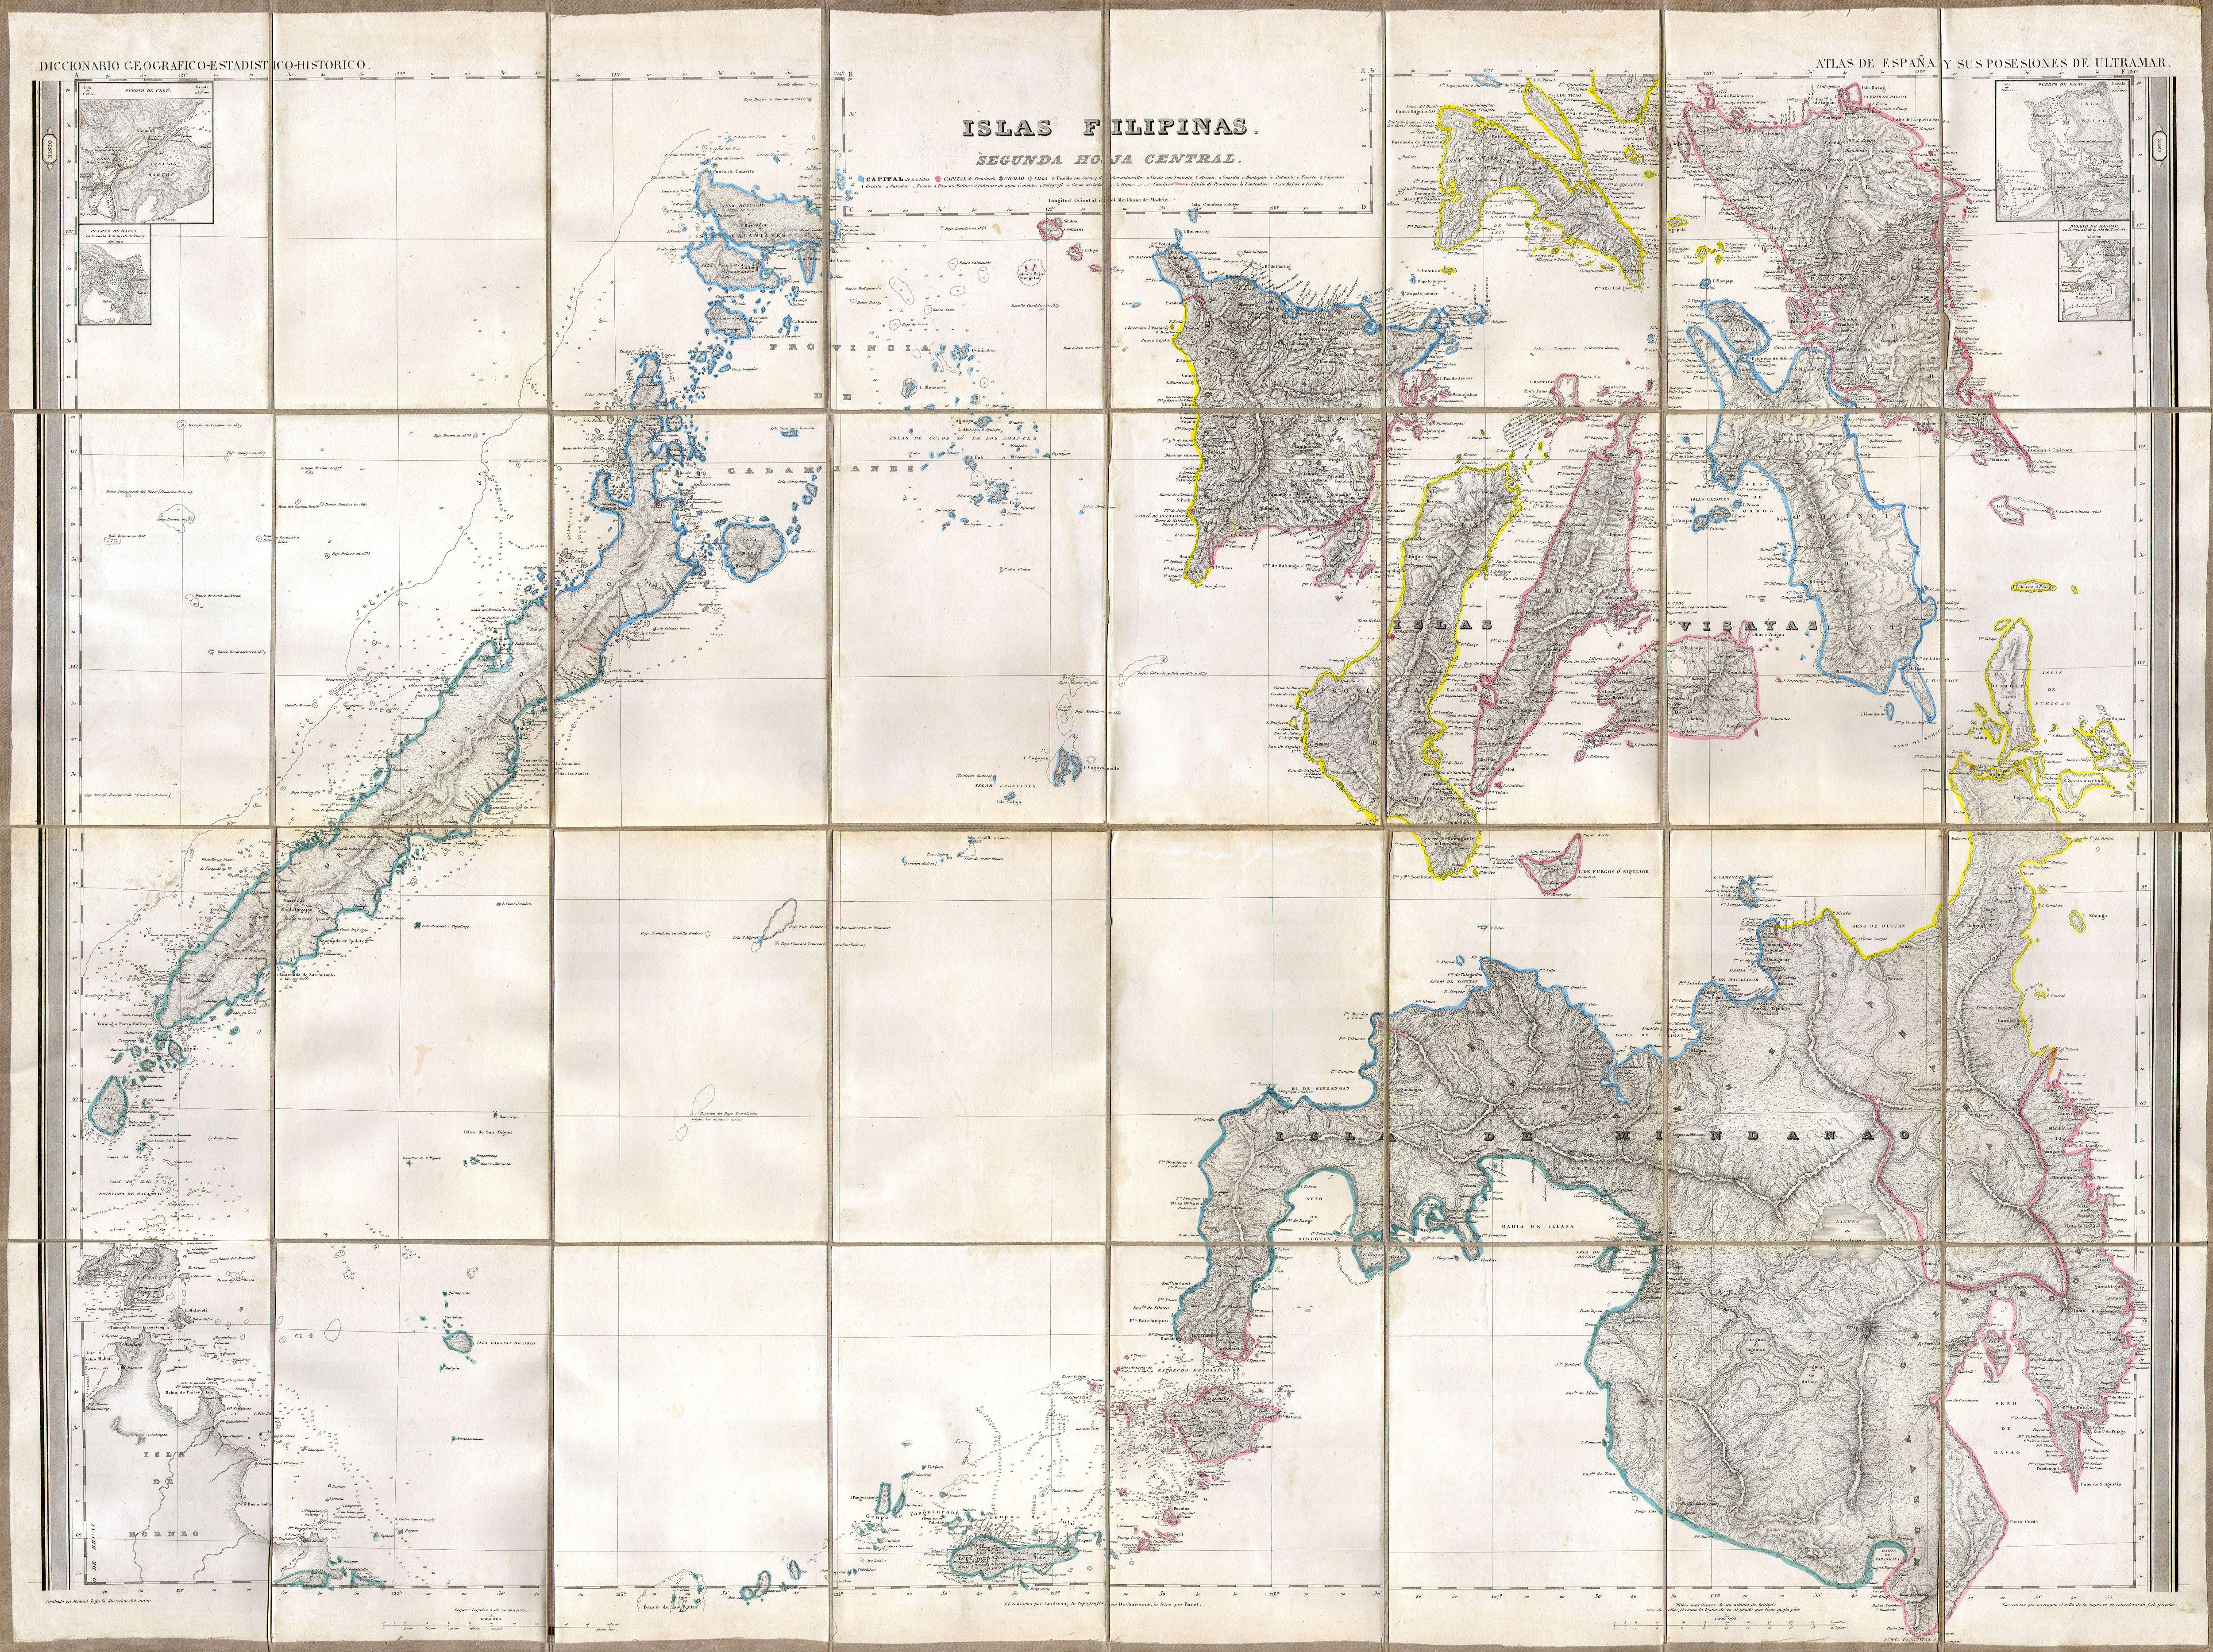 Spanish Philippines Map.Spanish Detailed Map Of The Philippines 1852 2 Of 2 5000 3732